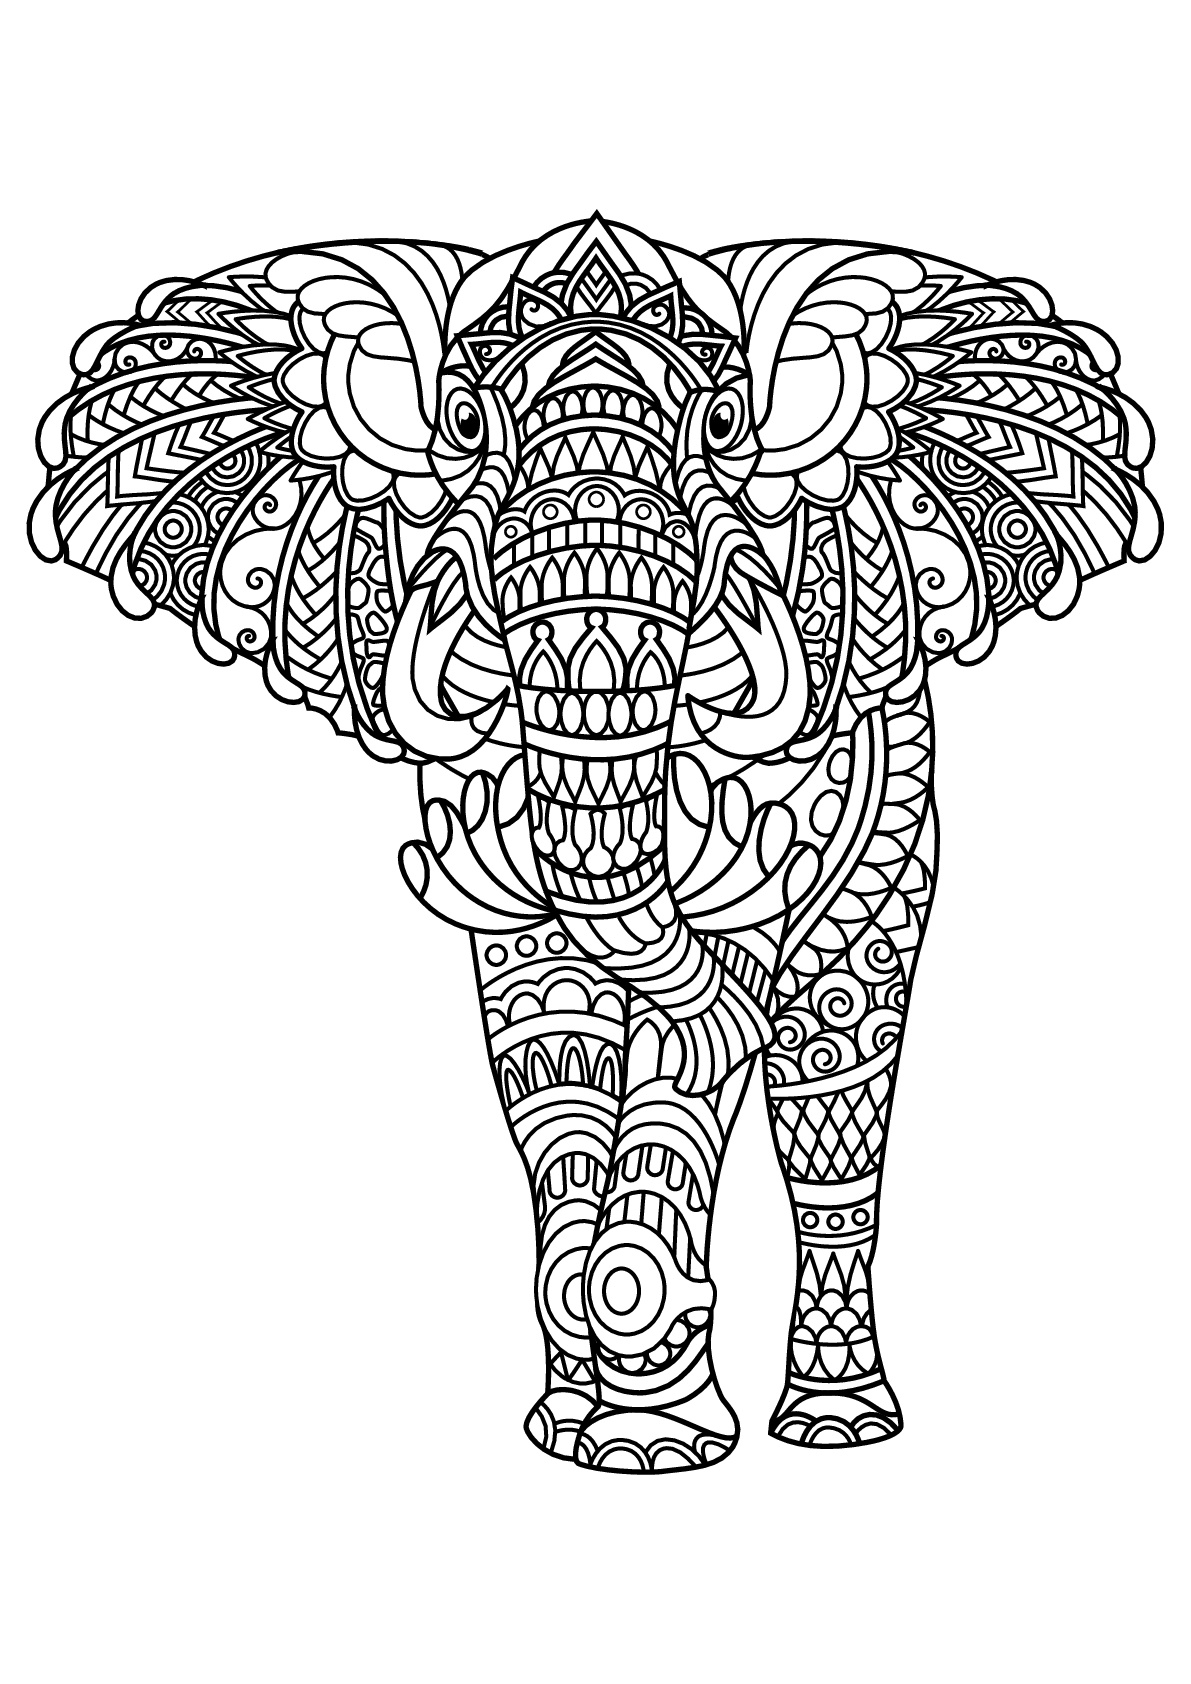 adult coloring pages animals wolf 2 animals coloring pages for adults justcolor pages adult animals coloring